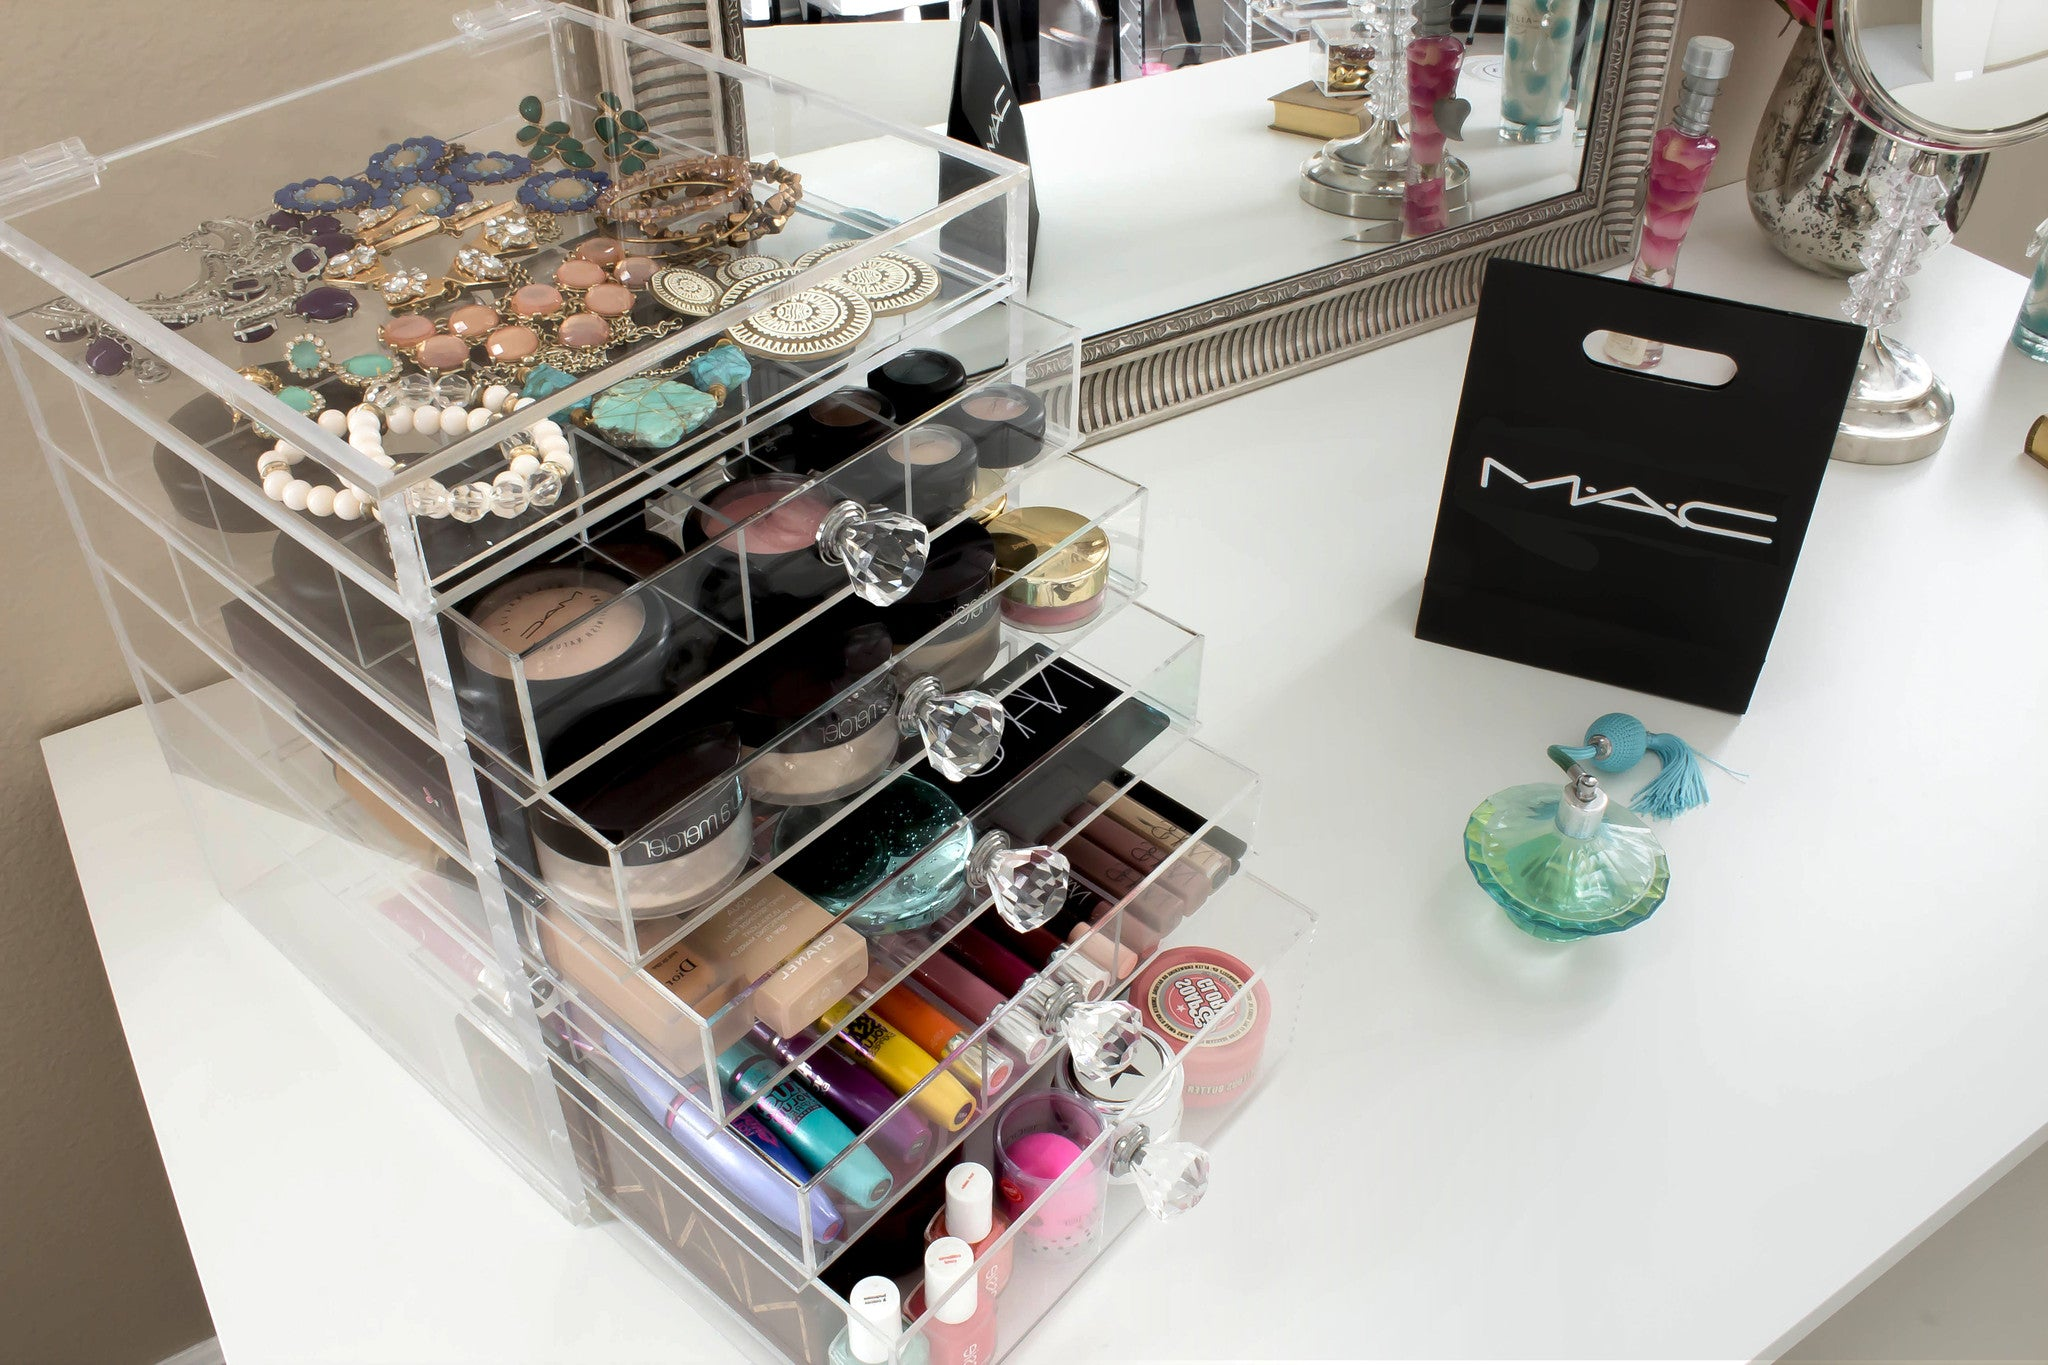 Clear Acrylic Makeup Organizer With  Drawers Flip Top And Diamond Handles